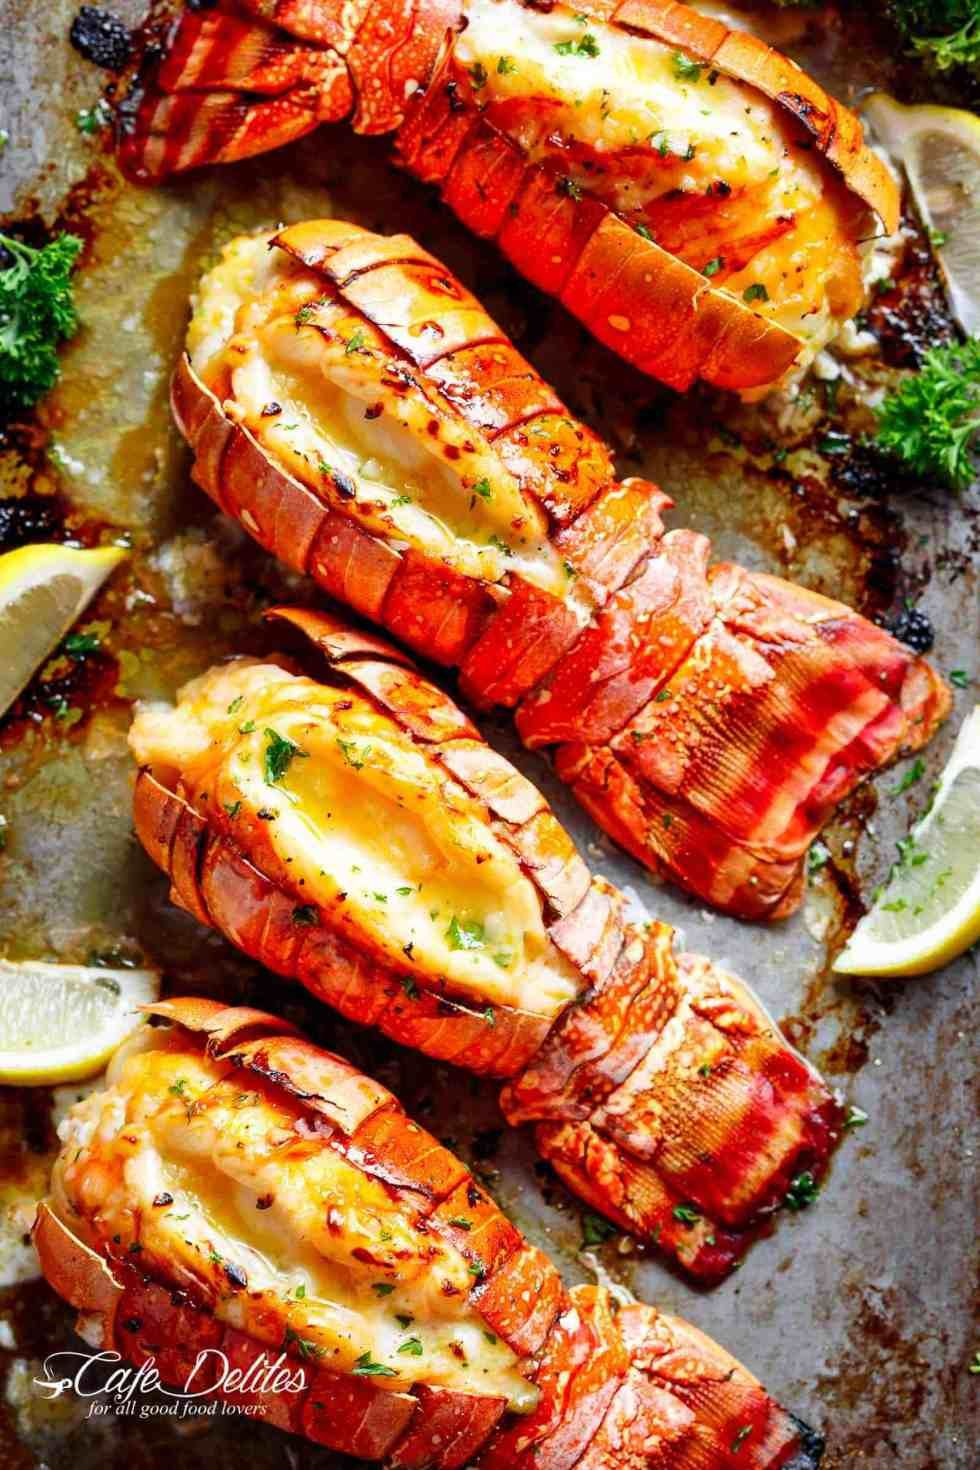 130 Reference Of Red Lobster White Wine Sauce Recipe In 2020 Lobster Recipes Tail White Wine Sauce Recipes Lobster Recipes